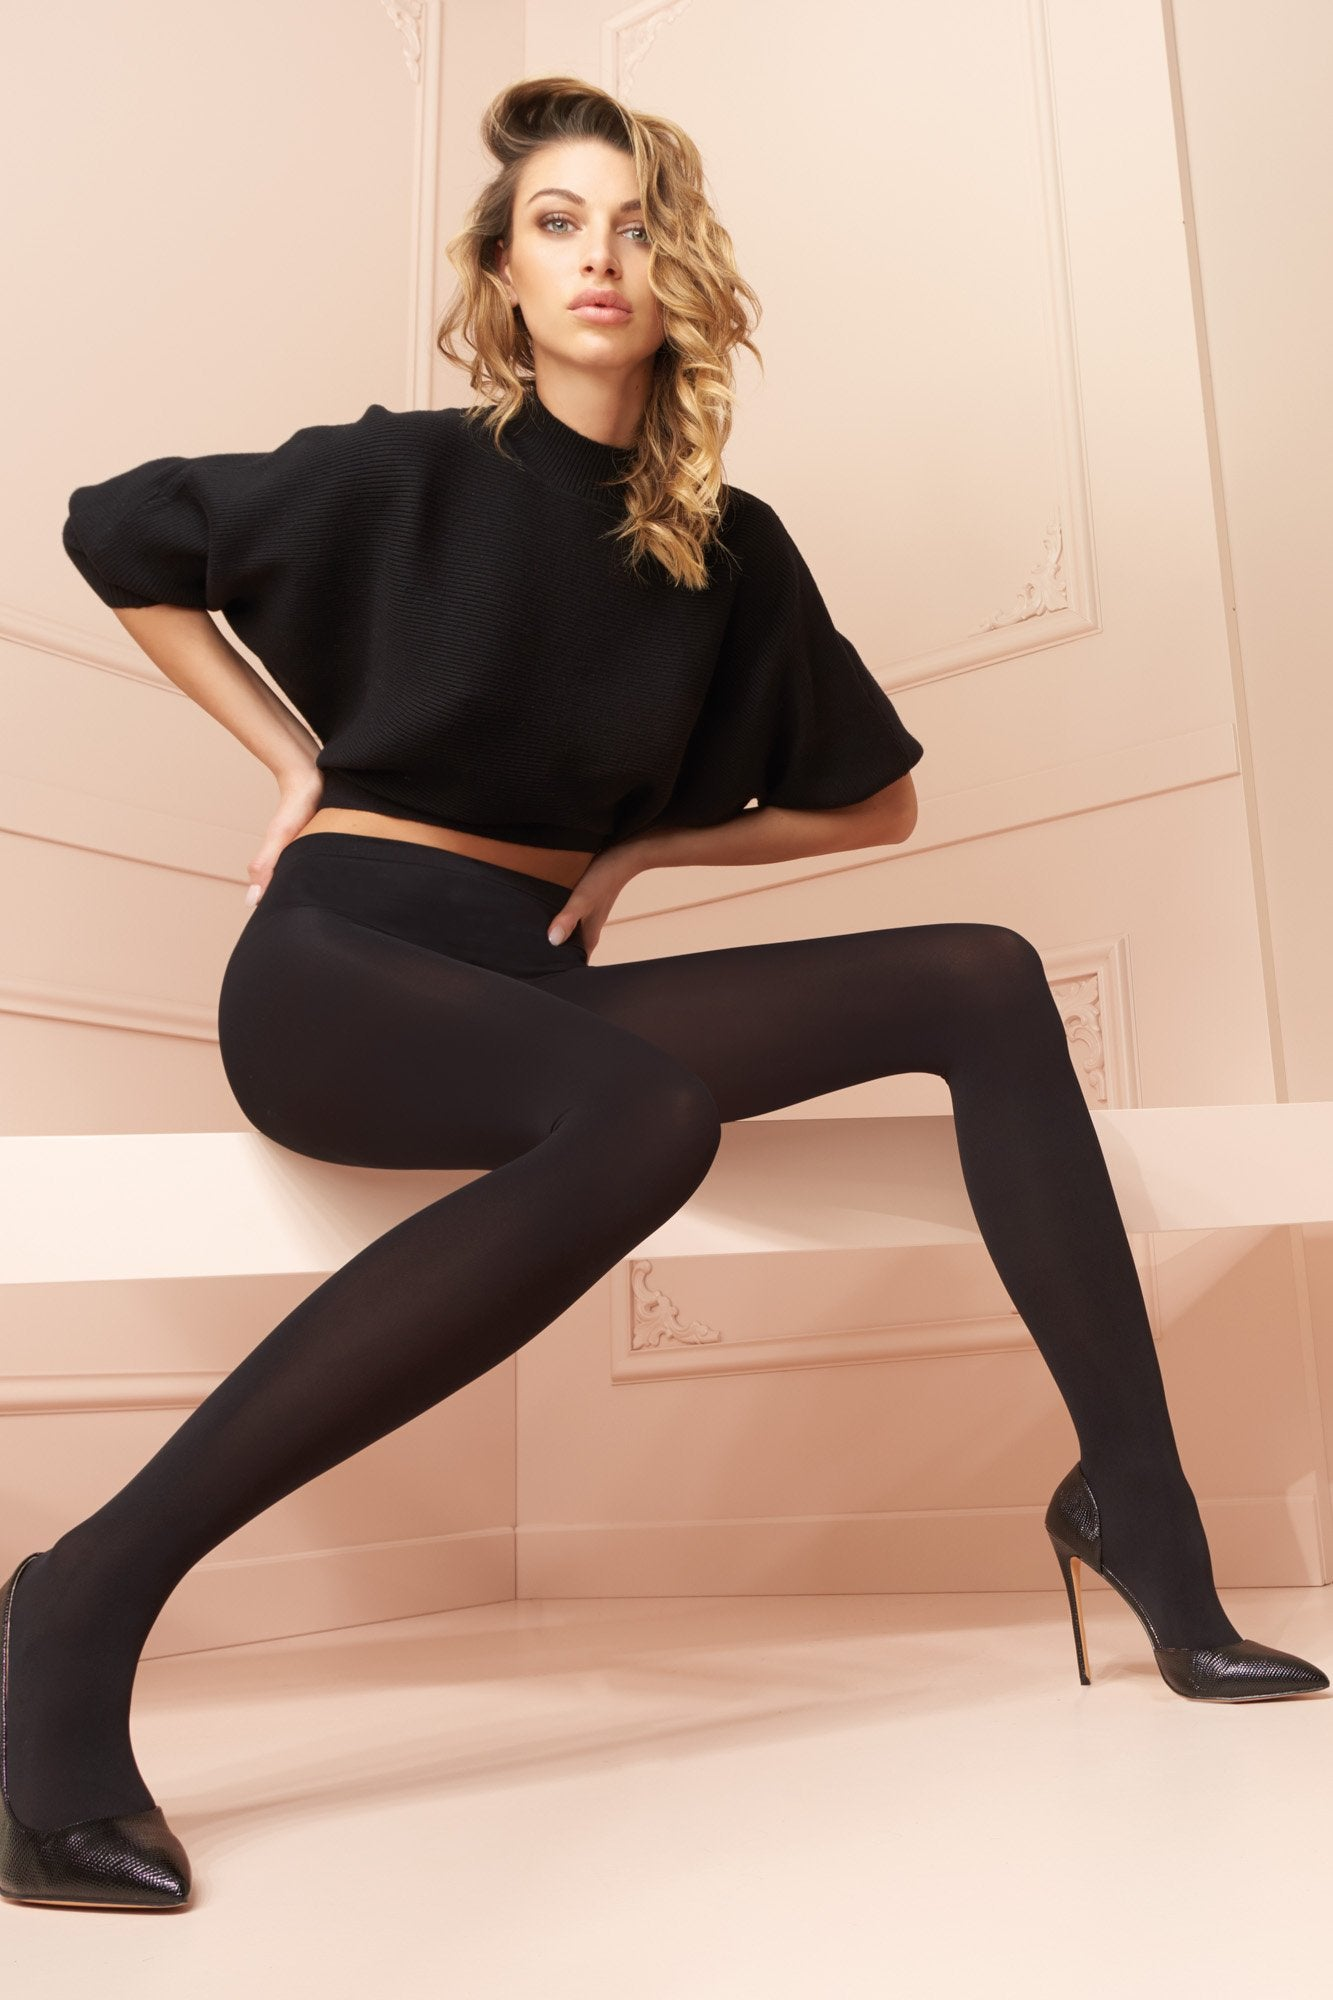 6a3869850 Opaque Tights at The Hosiery Box  Your Tights Store - THE HOSIERY BOX